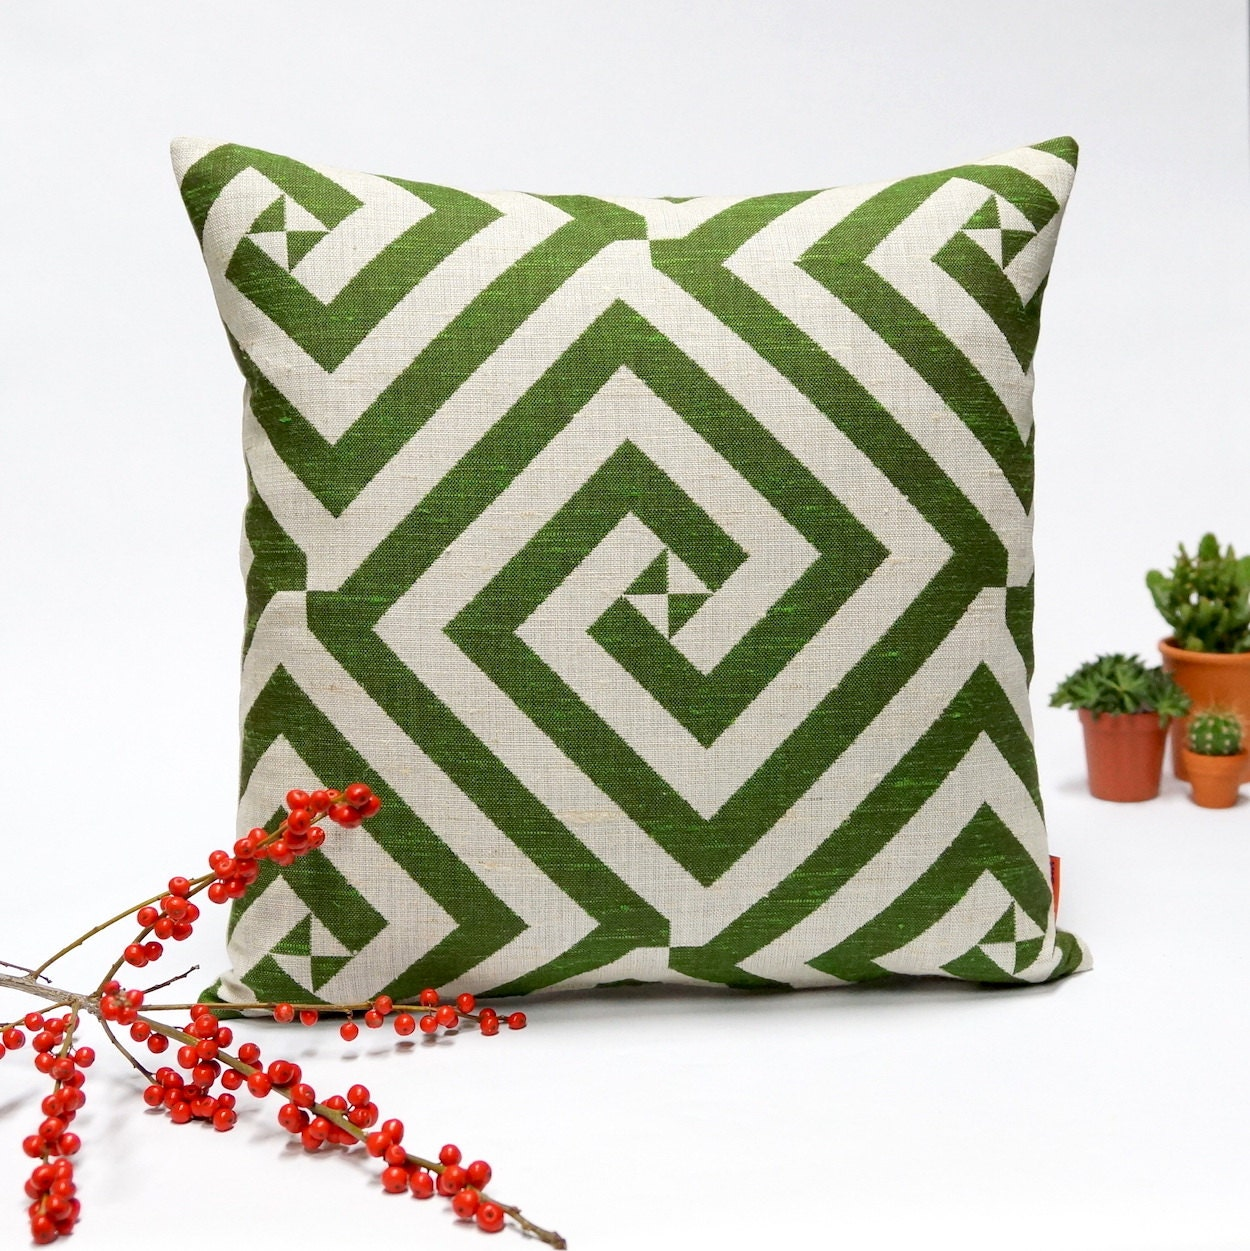 Midcentury Pillow : Mid Century Modern decorative pillow cover graphic decor in